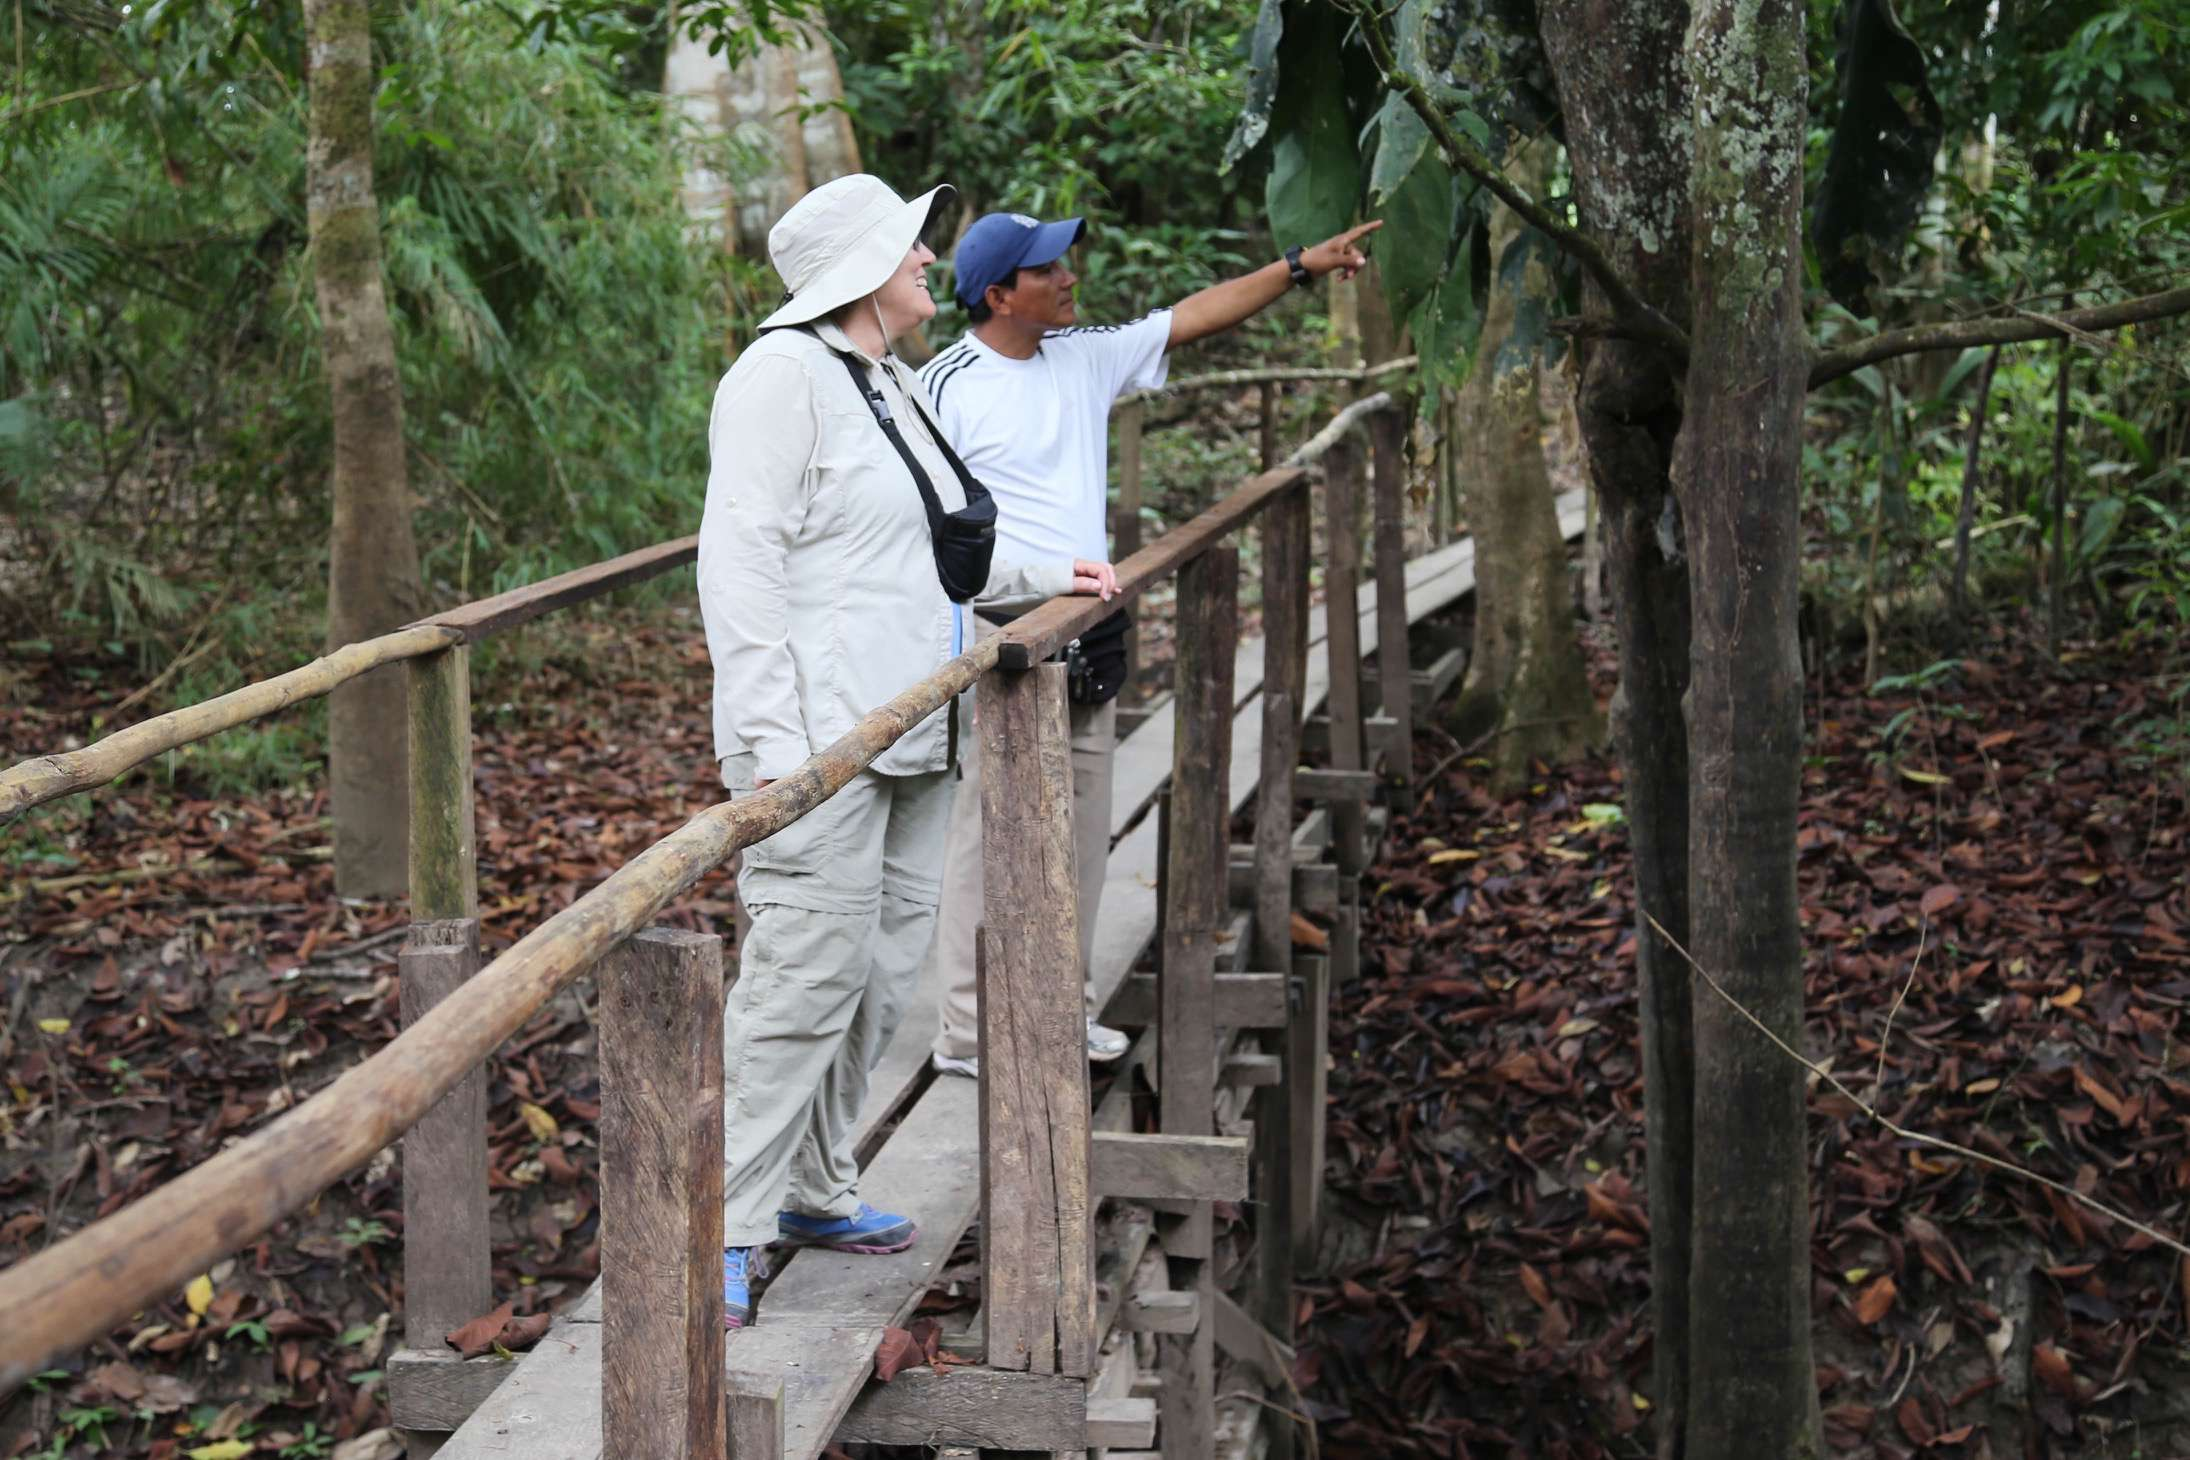 An expert guide points out to a visitor some of the wonders to be seen in the Amazon jungle.